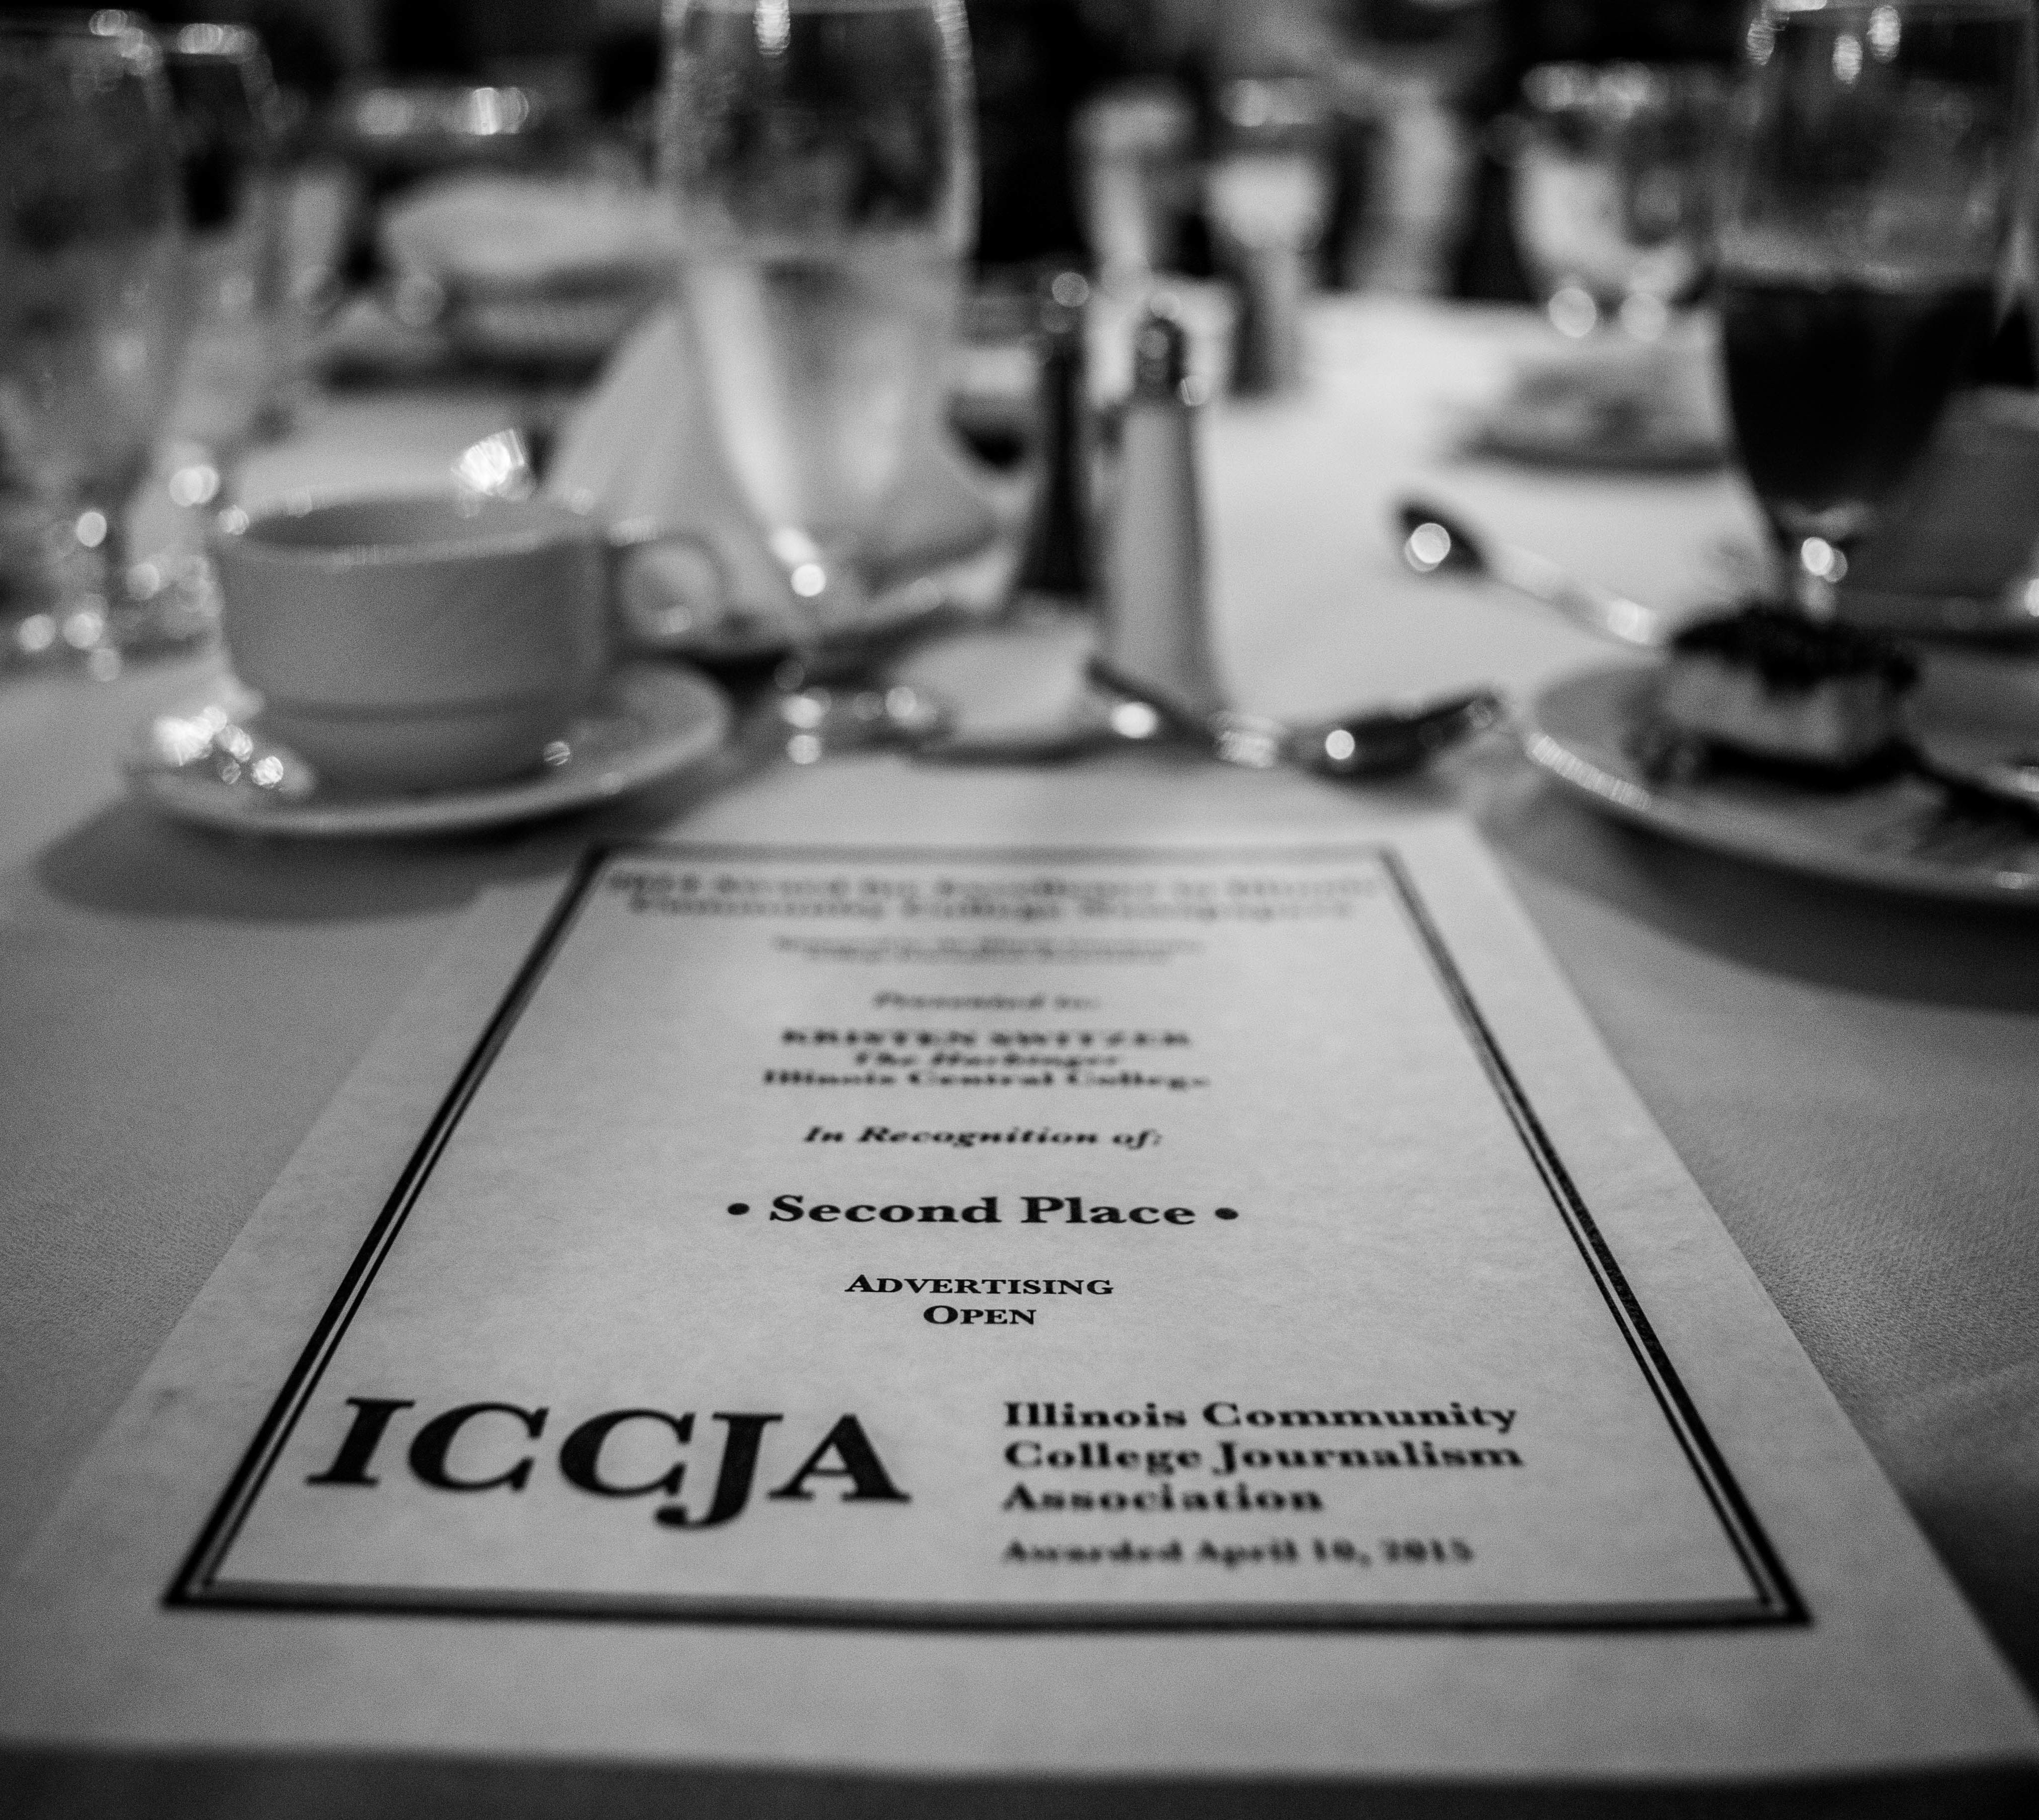 Harbinger recognized at ICCJA conference